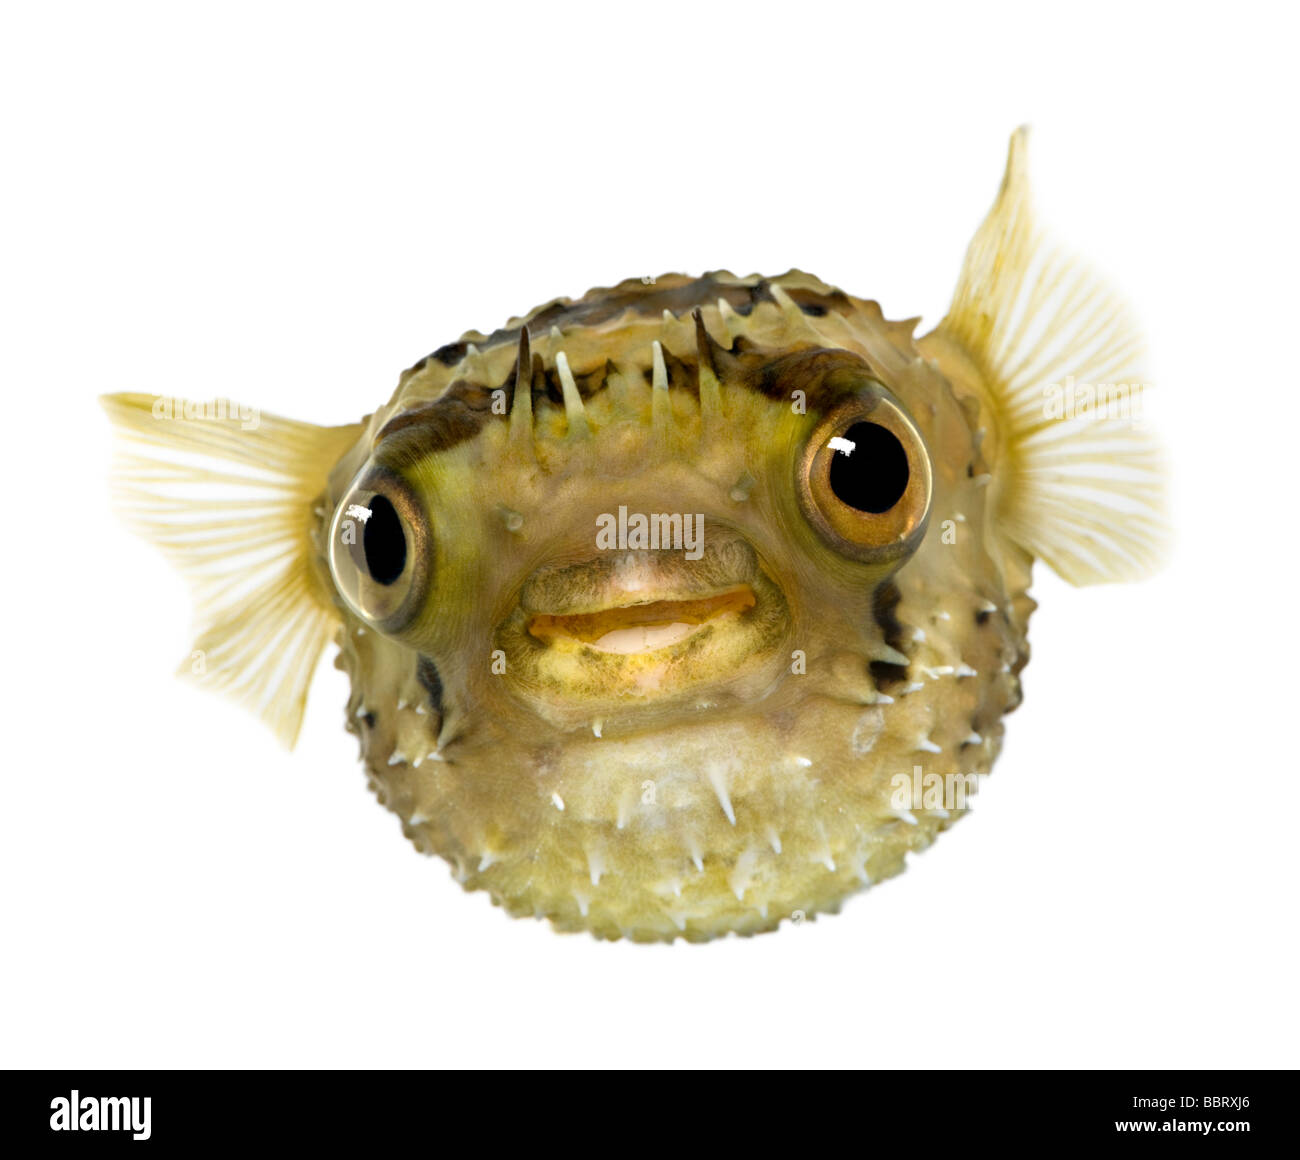 Long spine porcupinefish also know as spiny balloonfish Diodon holocanthus in front of a white background - Stock Image